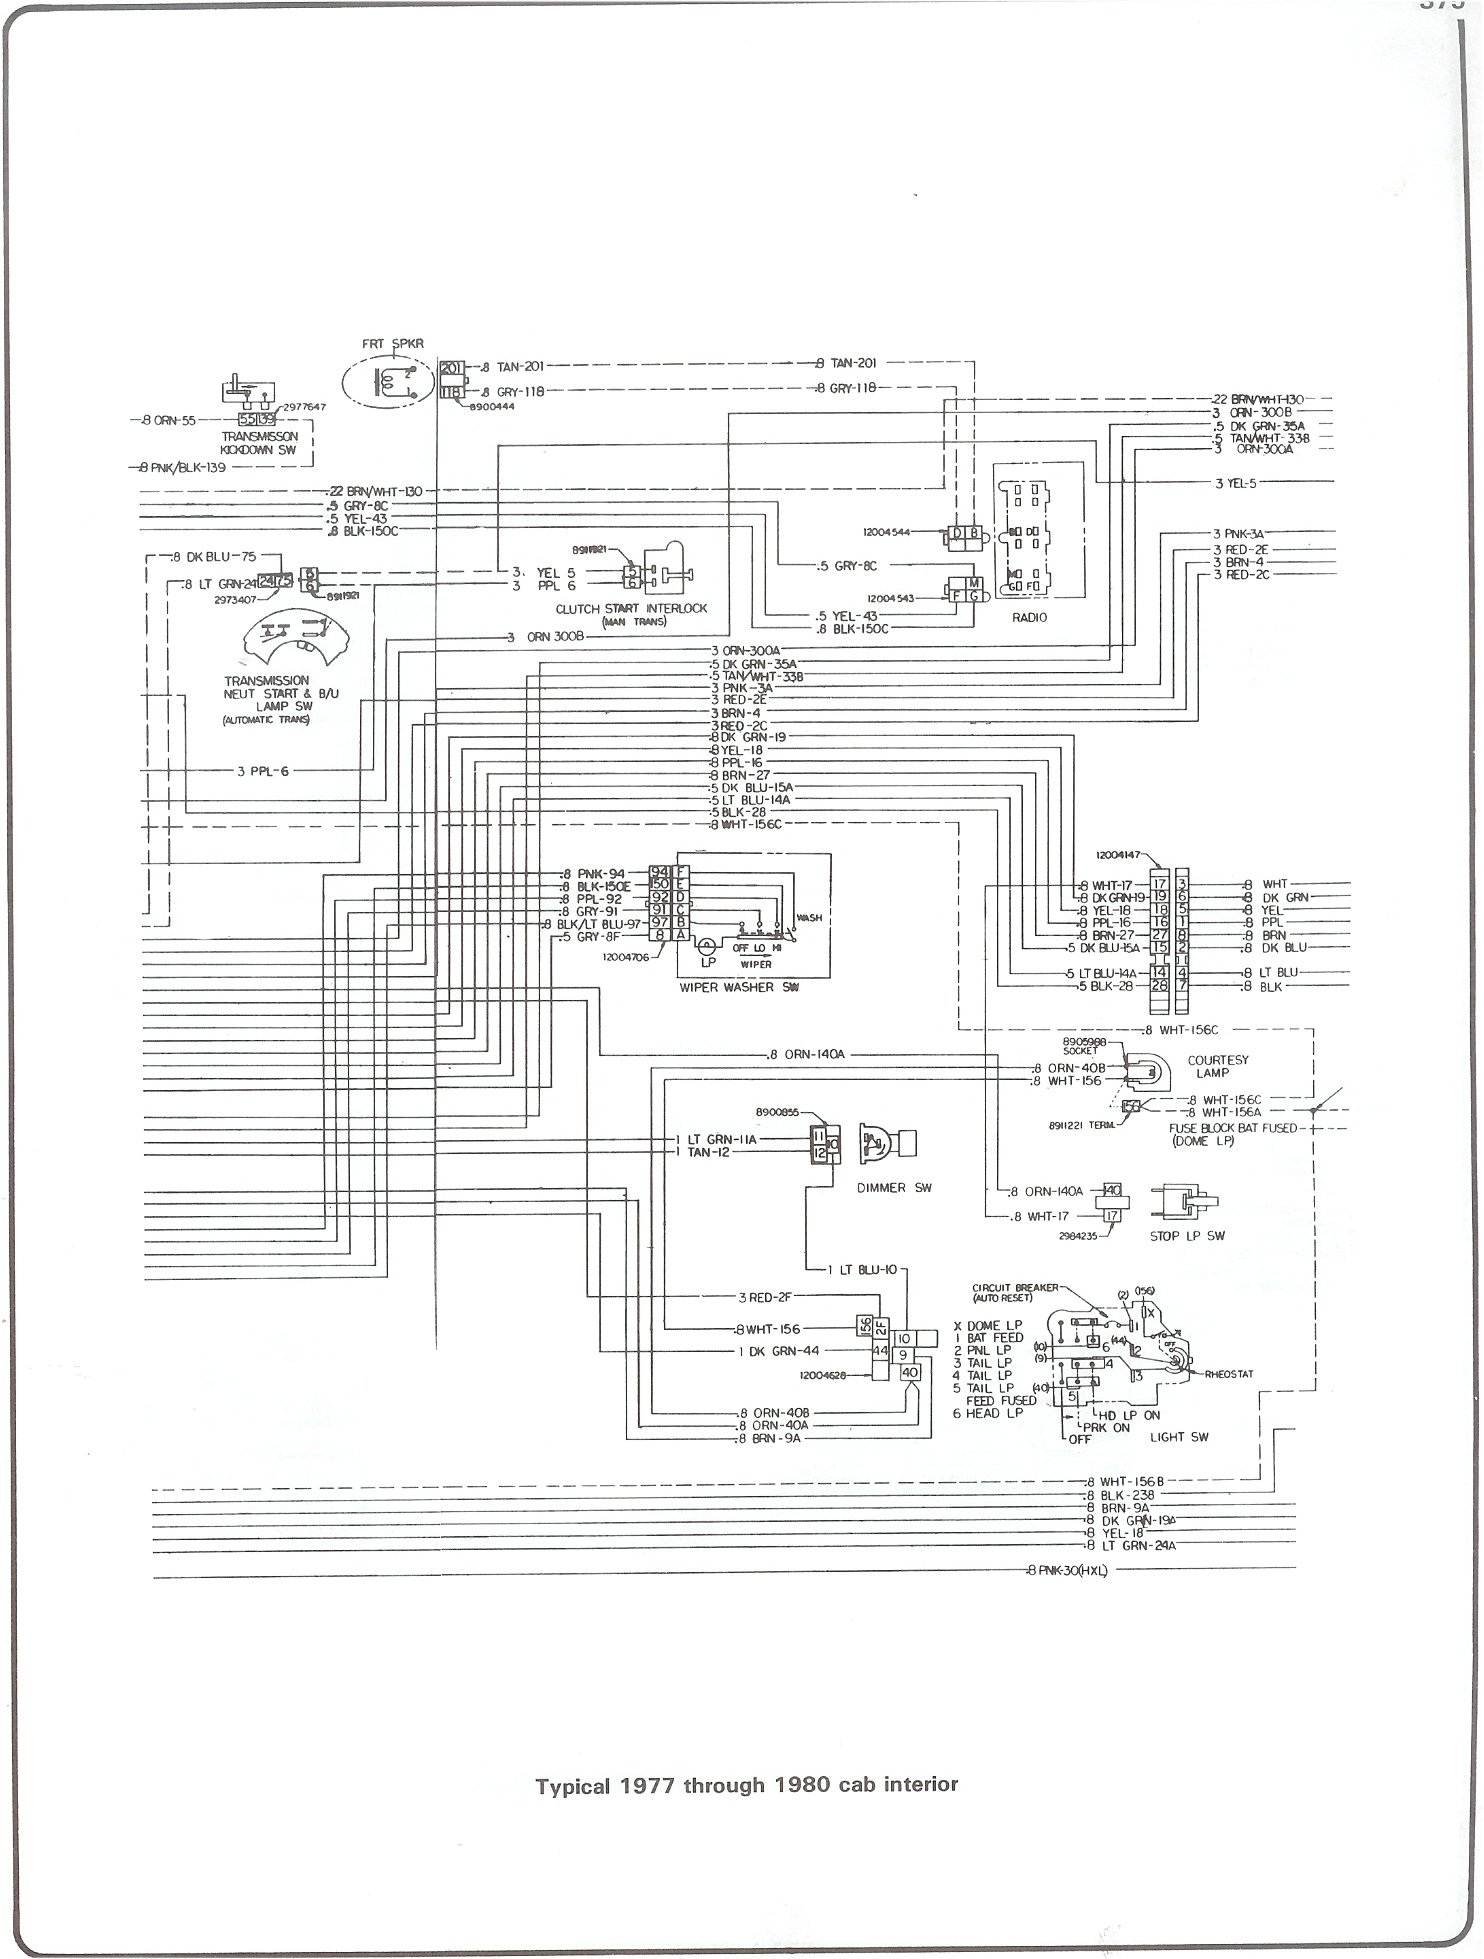 95 chevy s10 fuse box diagram 95 camaro fuse box diagram